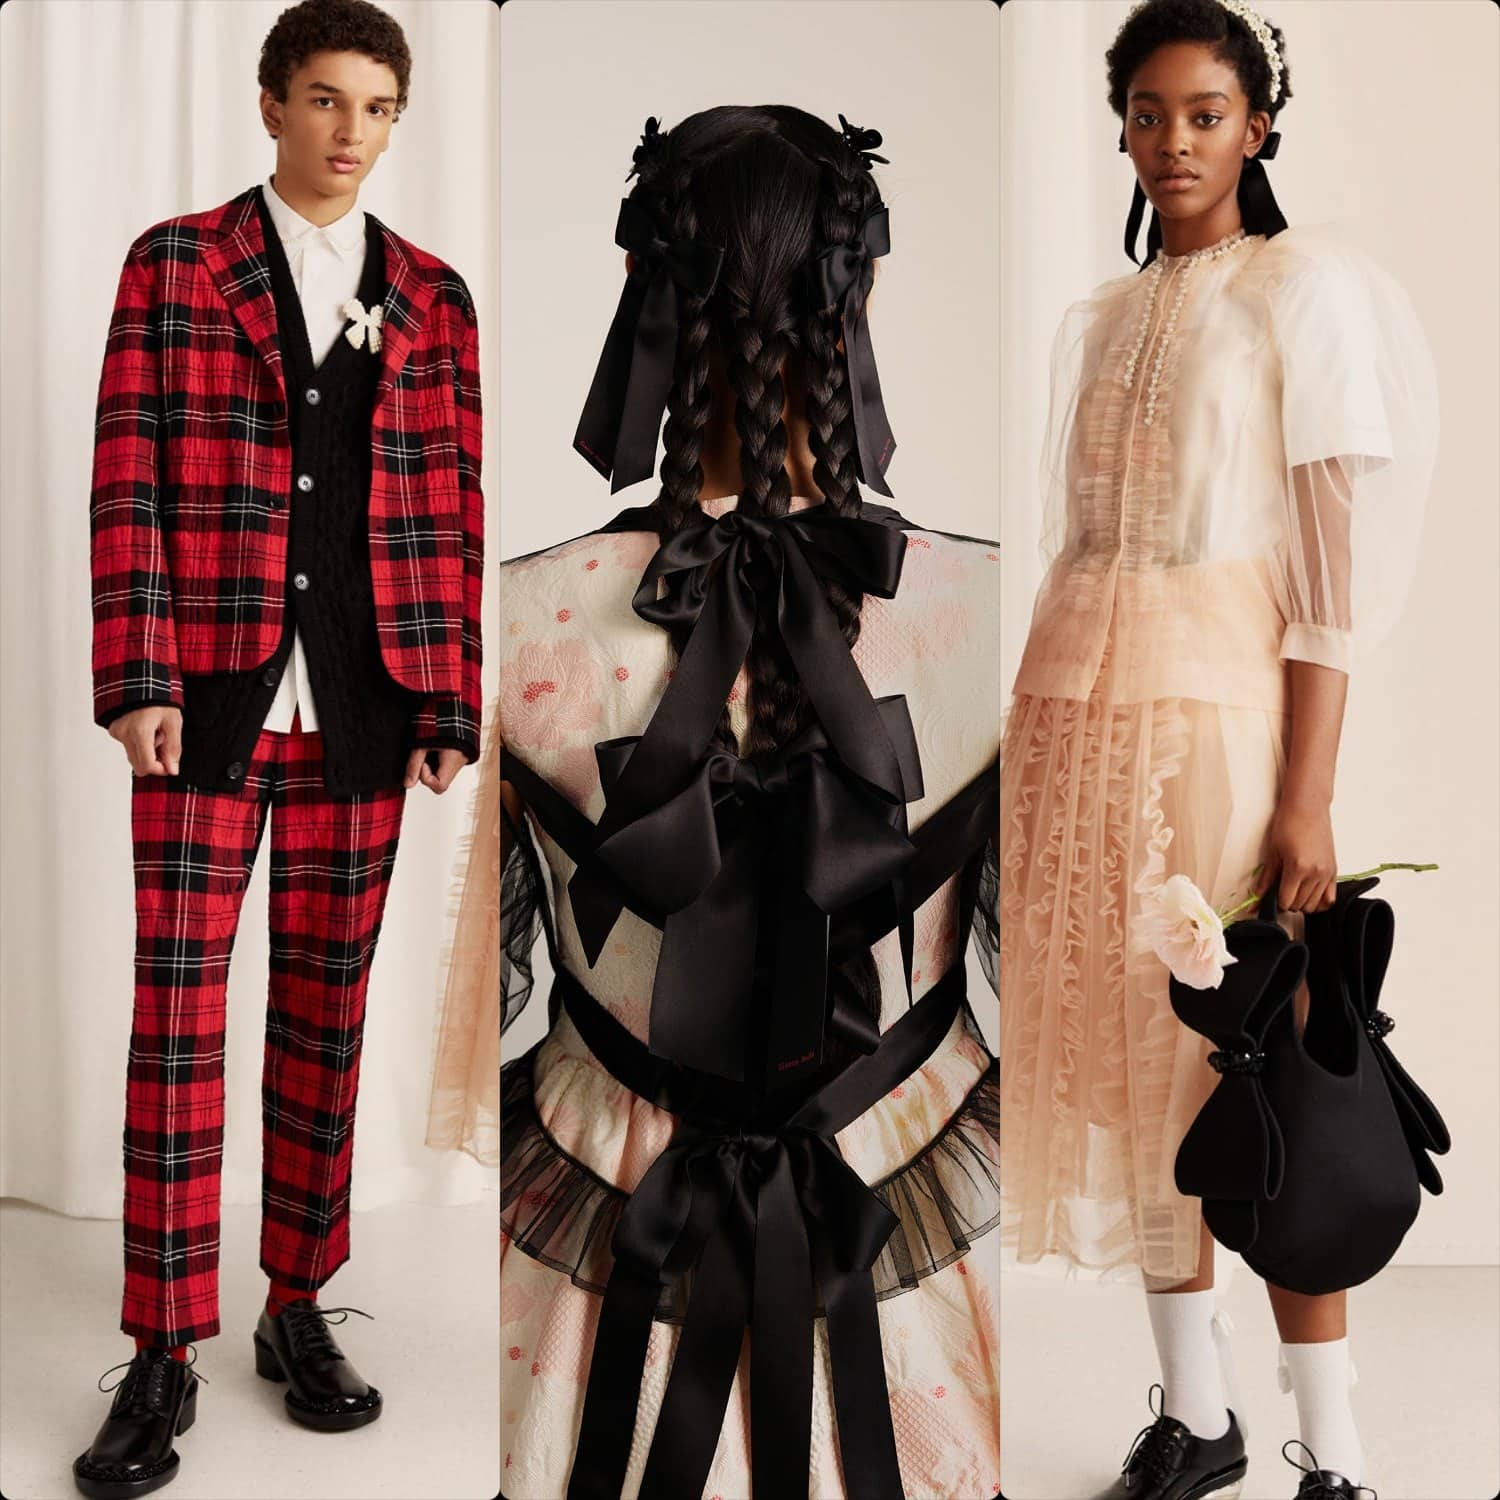 Simone Rocha for H&M. RUNWAY MAGAZINE ® Collections. RUNWAY NOW / RUNWAY NEW